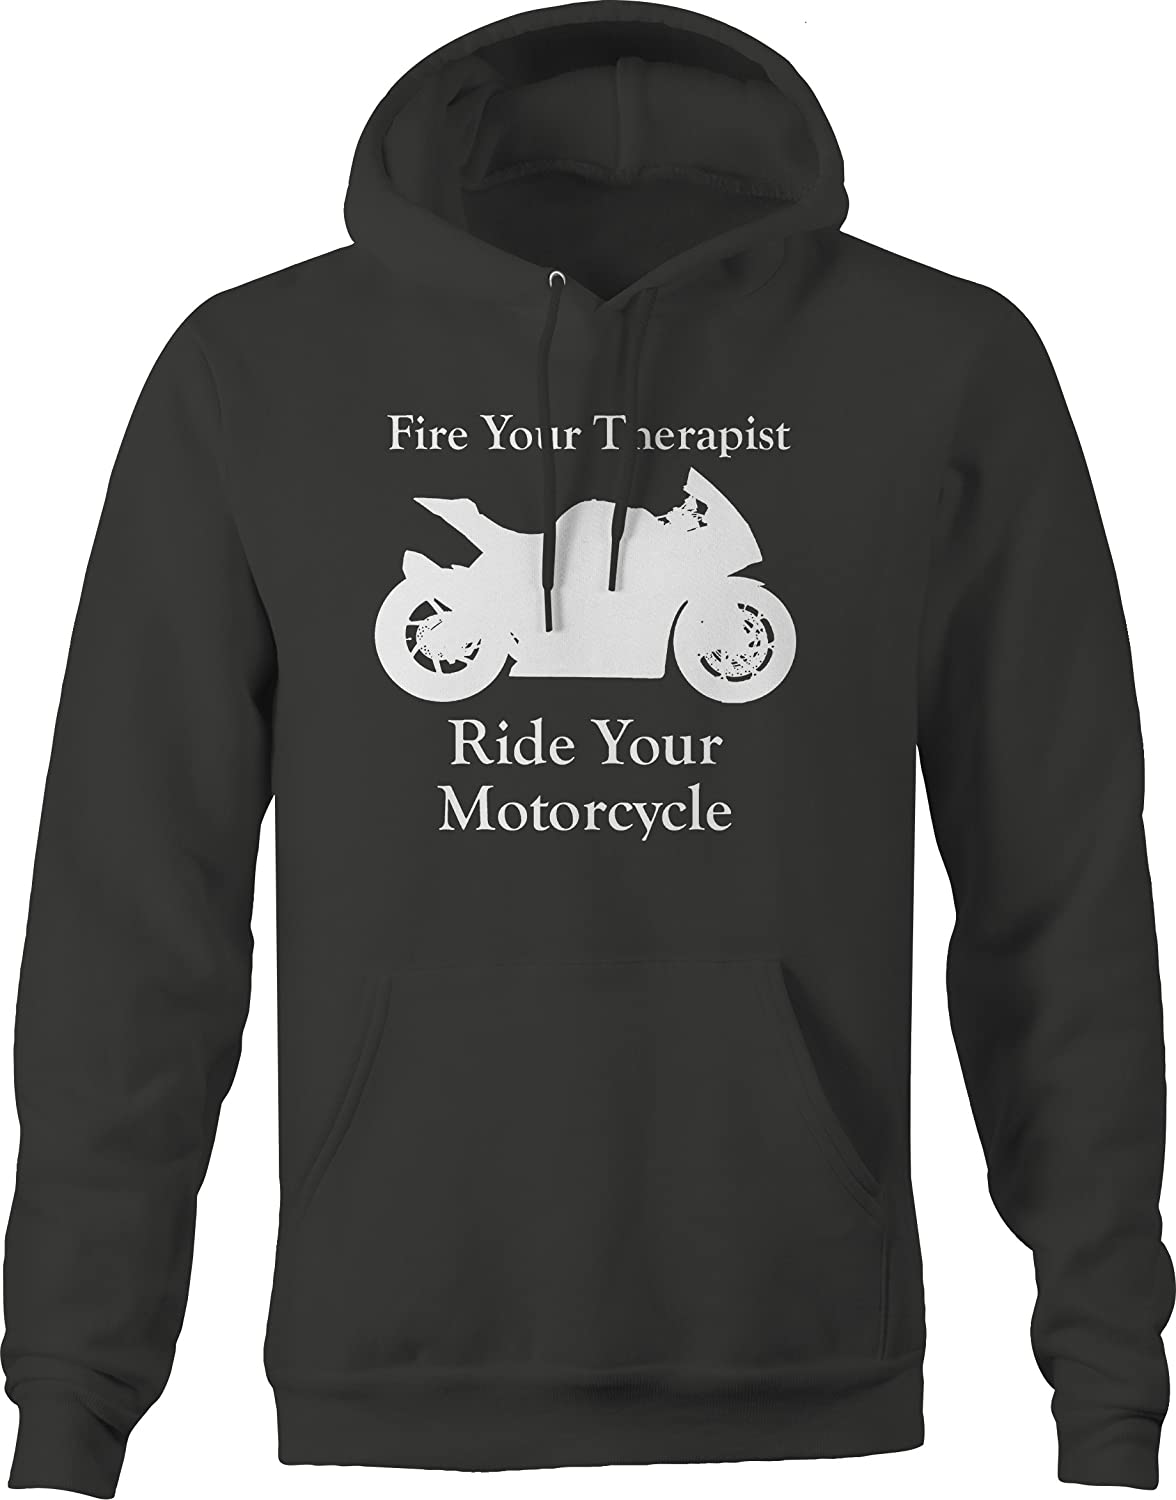 Fire Your Therapist Ride Motorcycle Street Bike Hooded Graphic Hoodie for Men